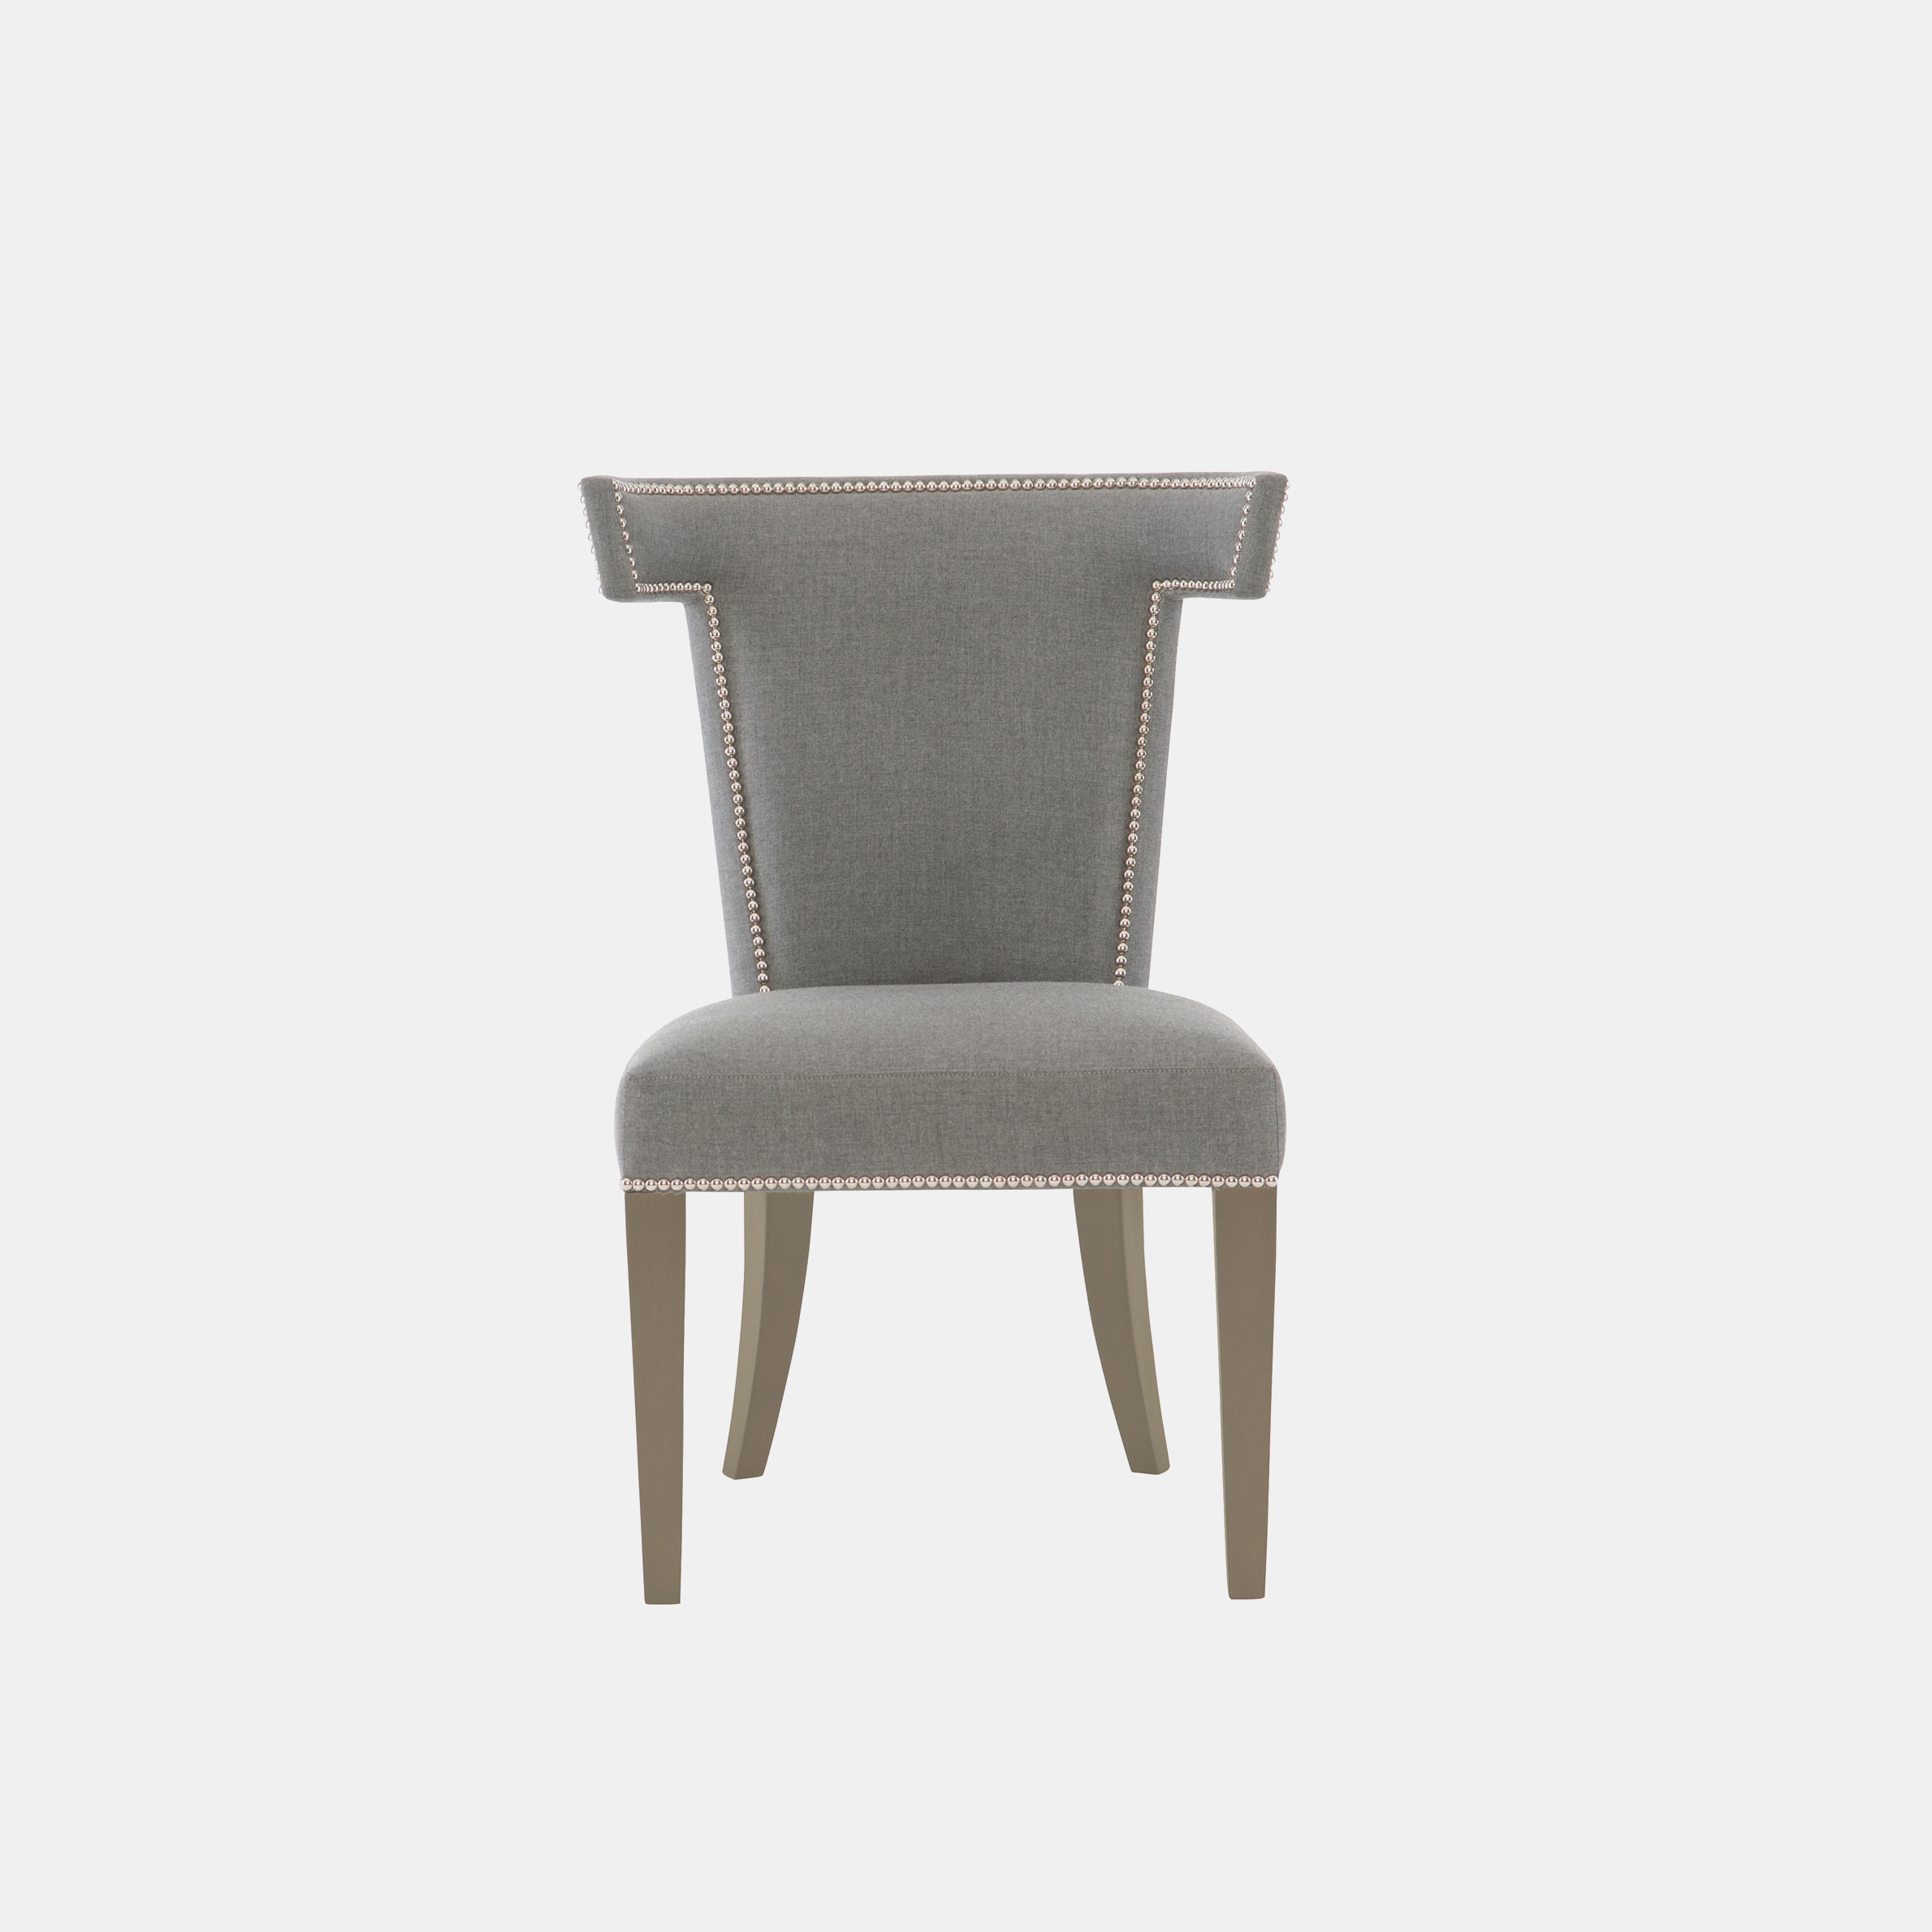 "Remy Side Chair  25-5/8""w x 25-3/8""d x 36-3/4""h Legs available in cocoa and smoke (shown). Available in fabric, leather, or COM. Also available as ottoman. SKU2209BHT"